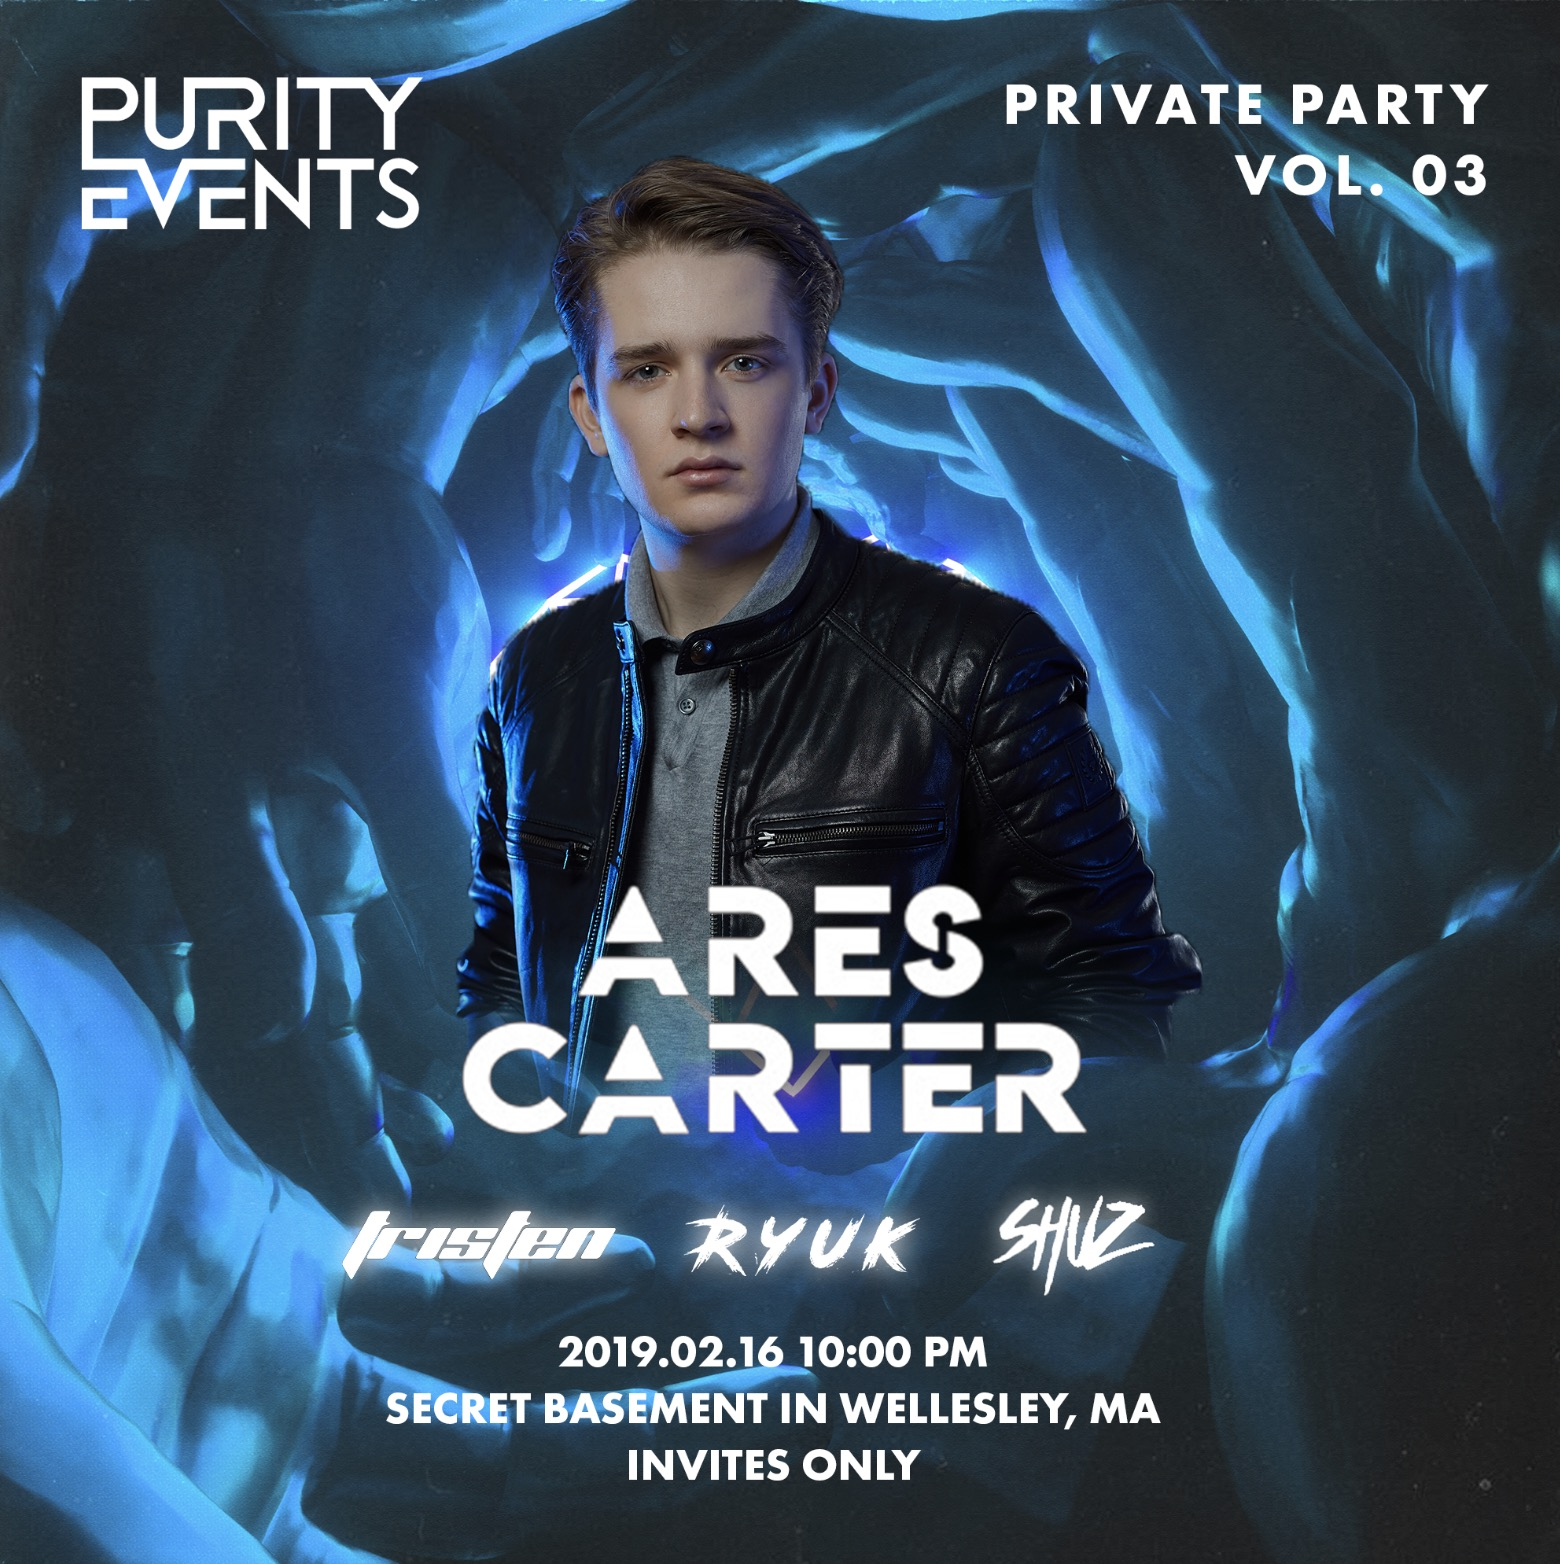 PURITY Private Party Vol. 03 with Ares Carter  Feb. 16, 2019